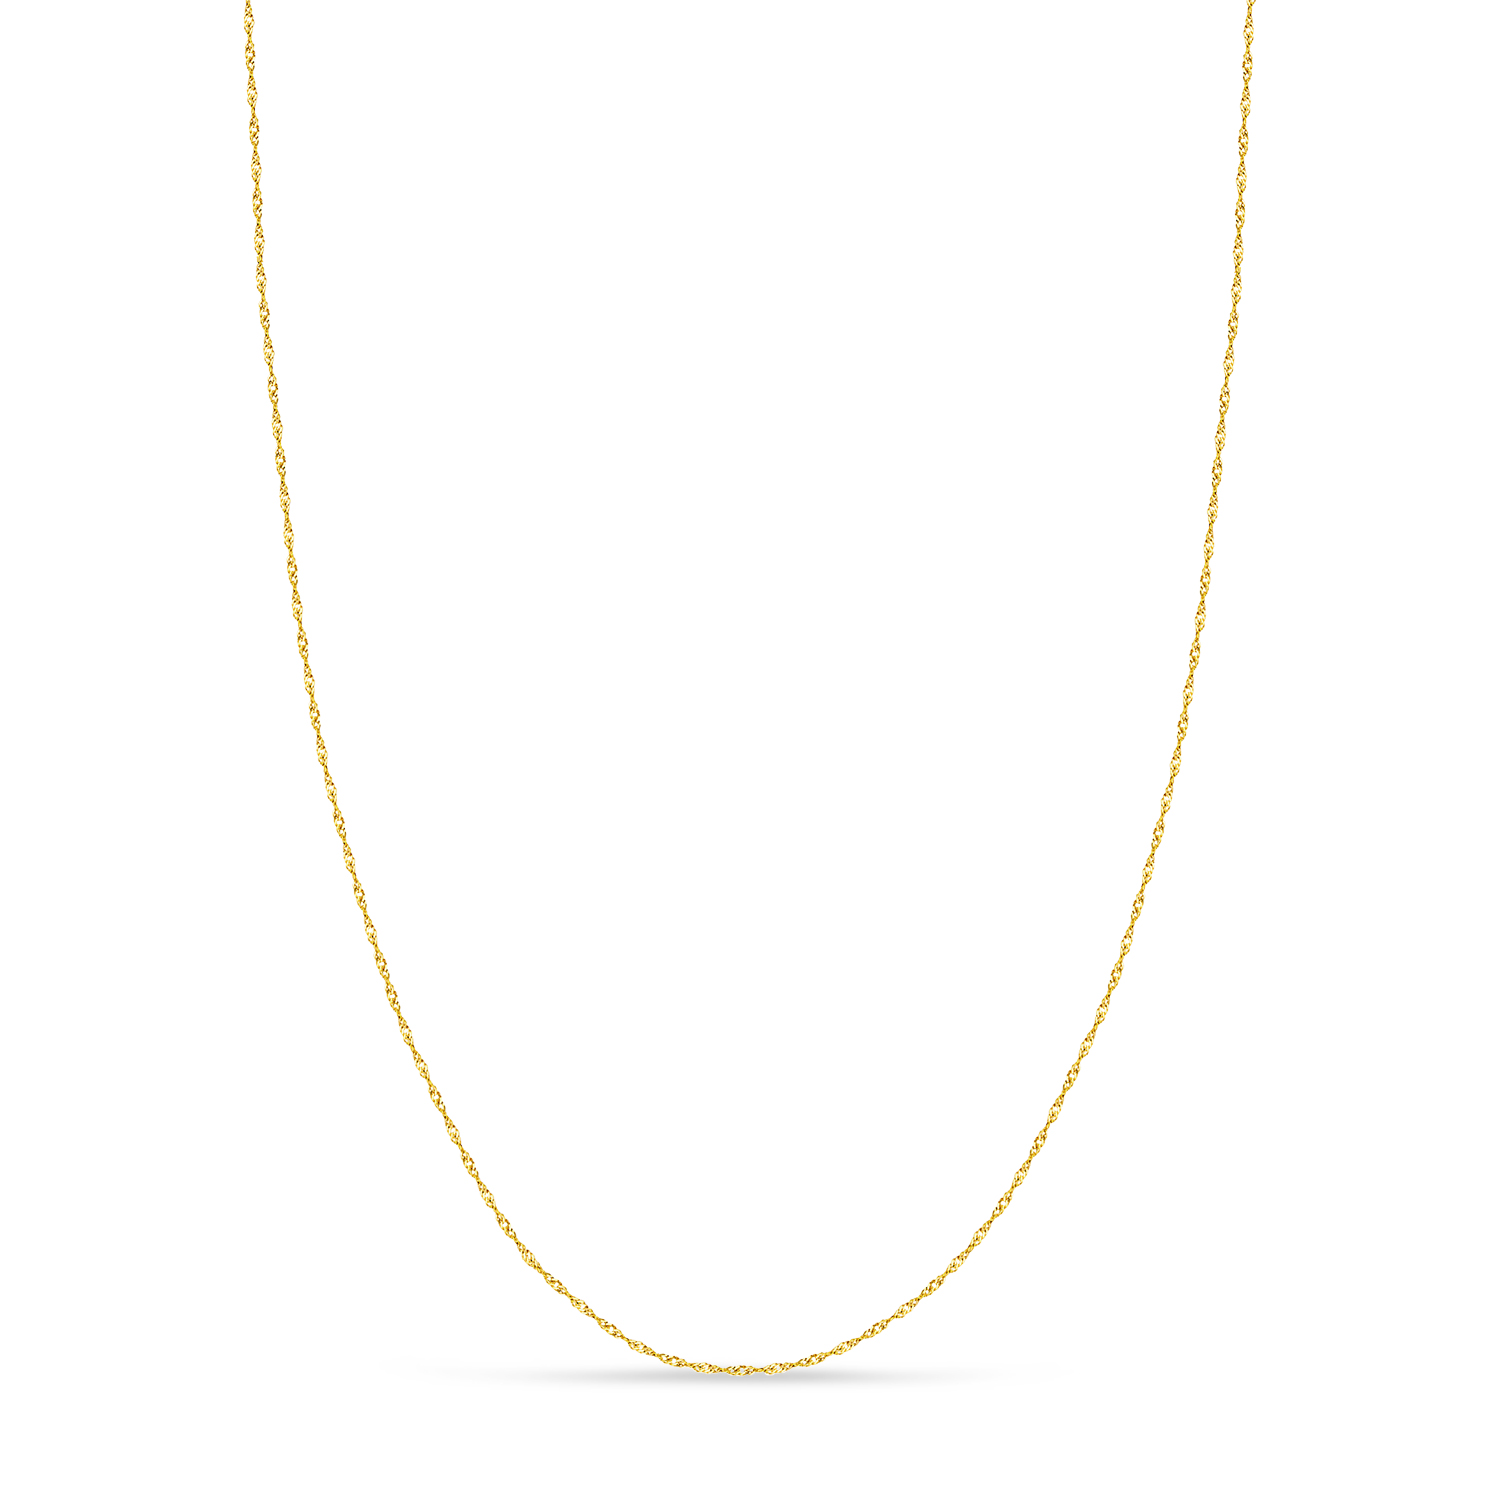 Singapore Chain Necklace With Lobster Lock 14k Yellow Gold